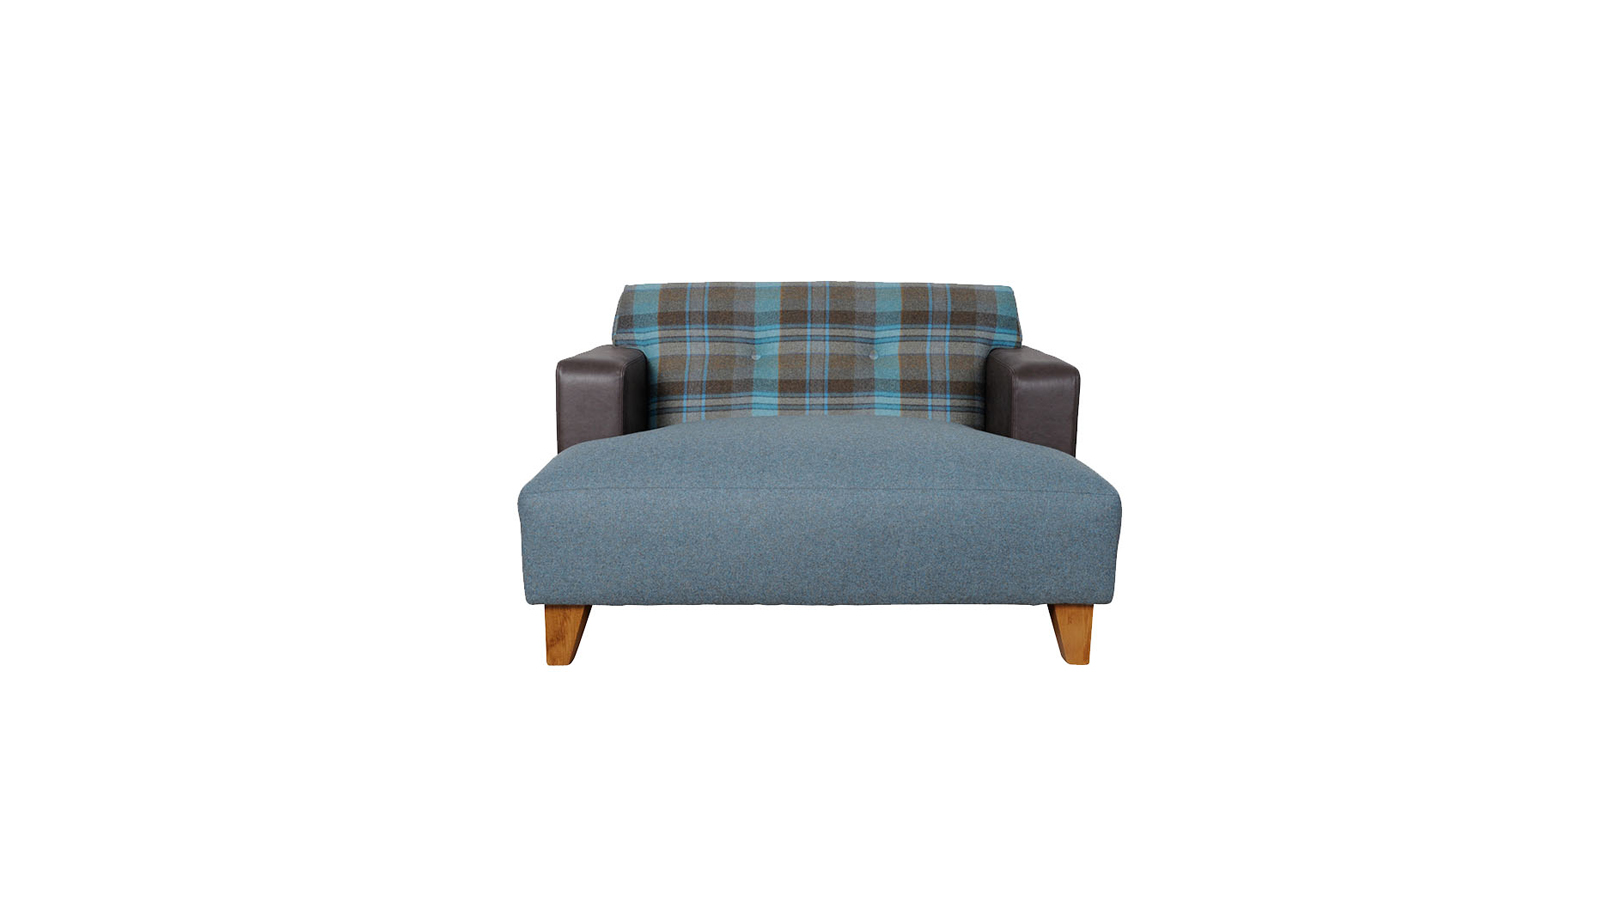 James Plant - Bisley Sofa Range 005.JPG